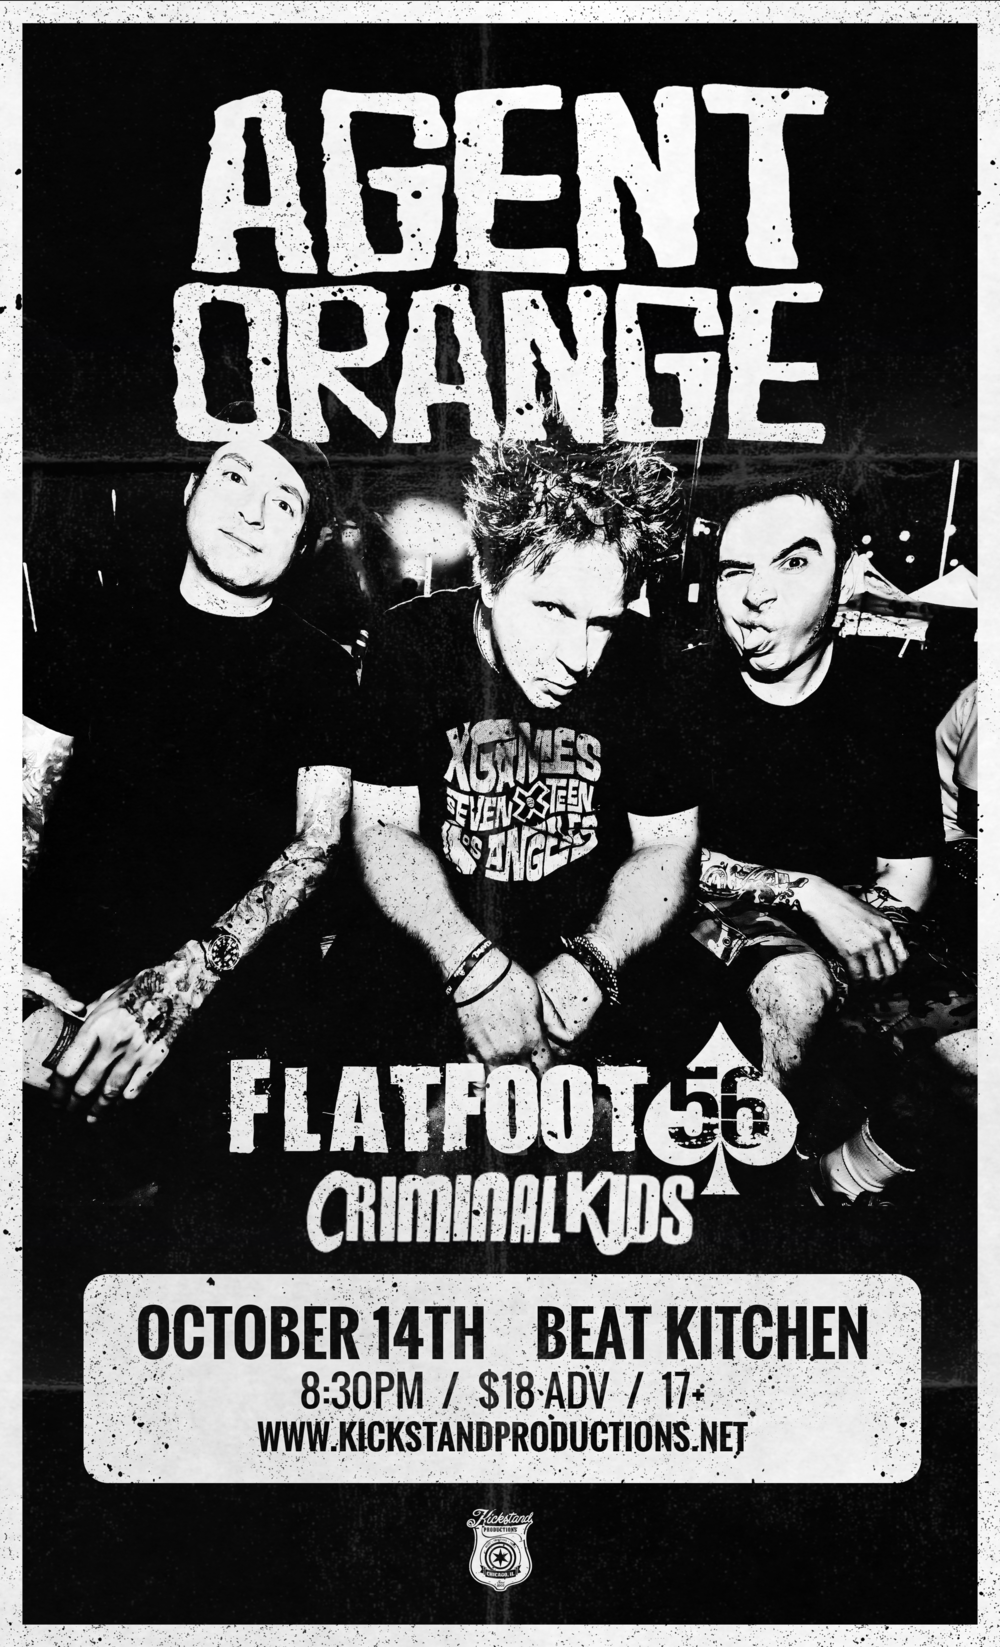 WITH AGENT ORANGE & FLATFOOT 56 - at Beat Kitchen, Oct 14th 2017